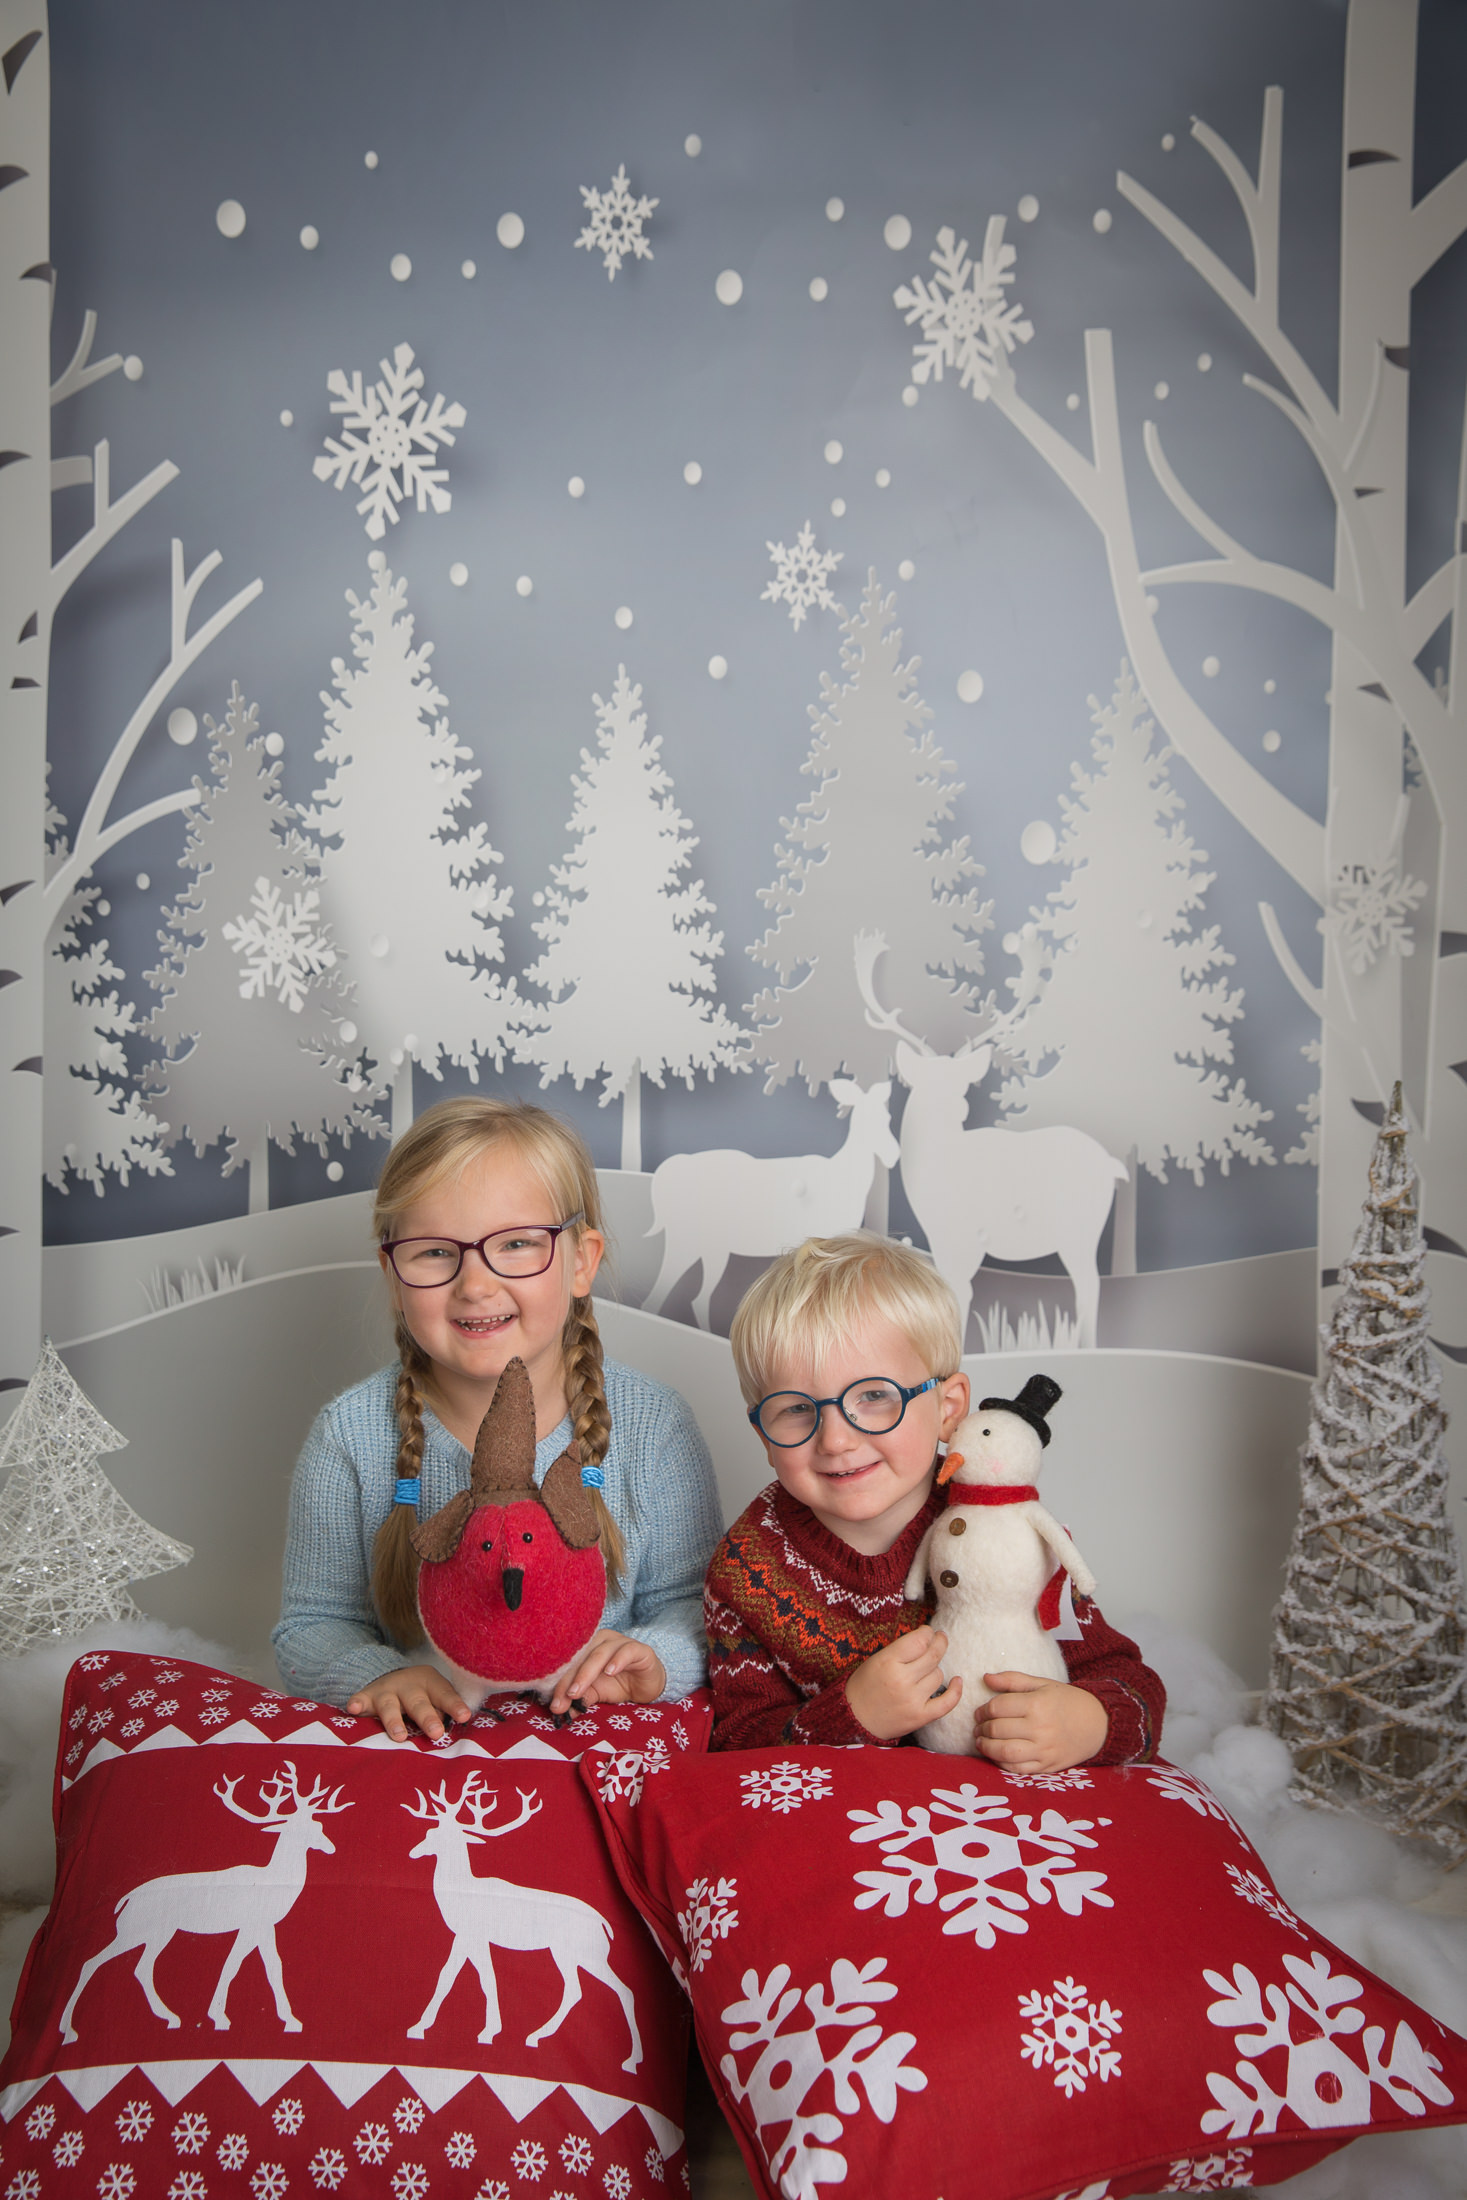 hayley morris photography christmas mini snowflakes children fun photos sessions